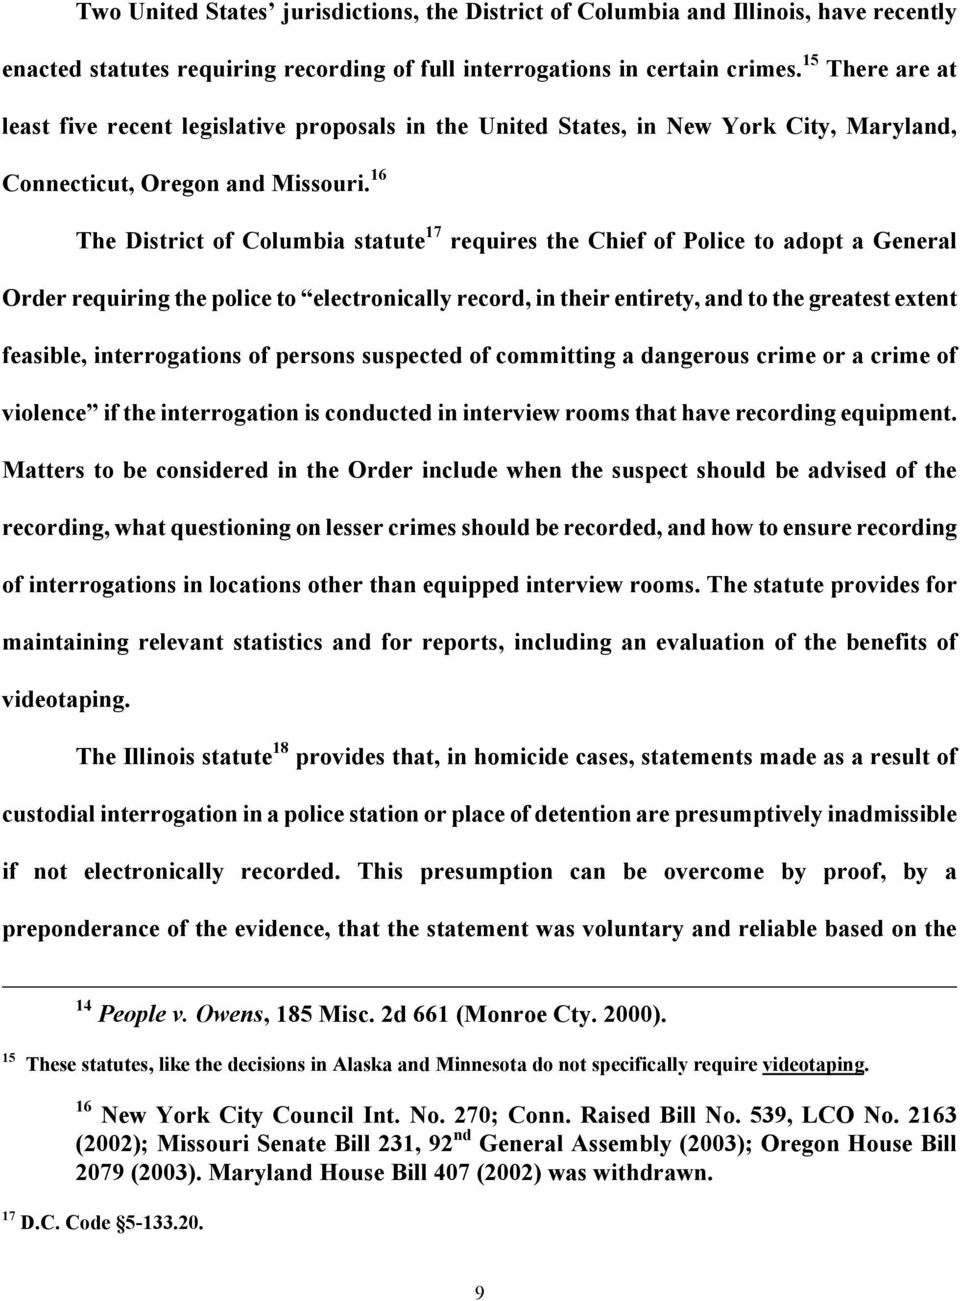 16 The District of Columbia statute 17 requires the Chief of Police to adopt a General Order requiring the police to electronically record, in their entirety, and to the greatest extent feasible,